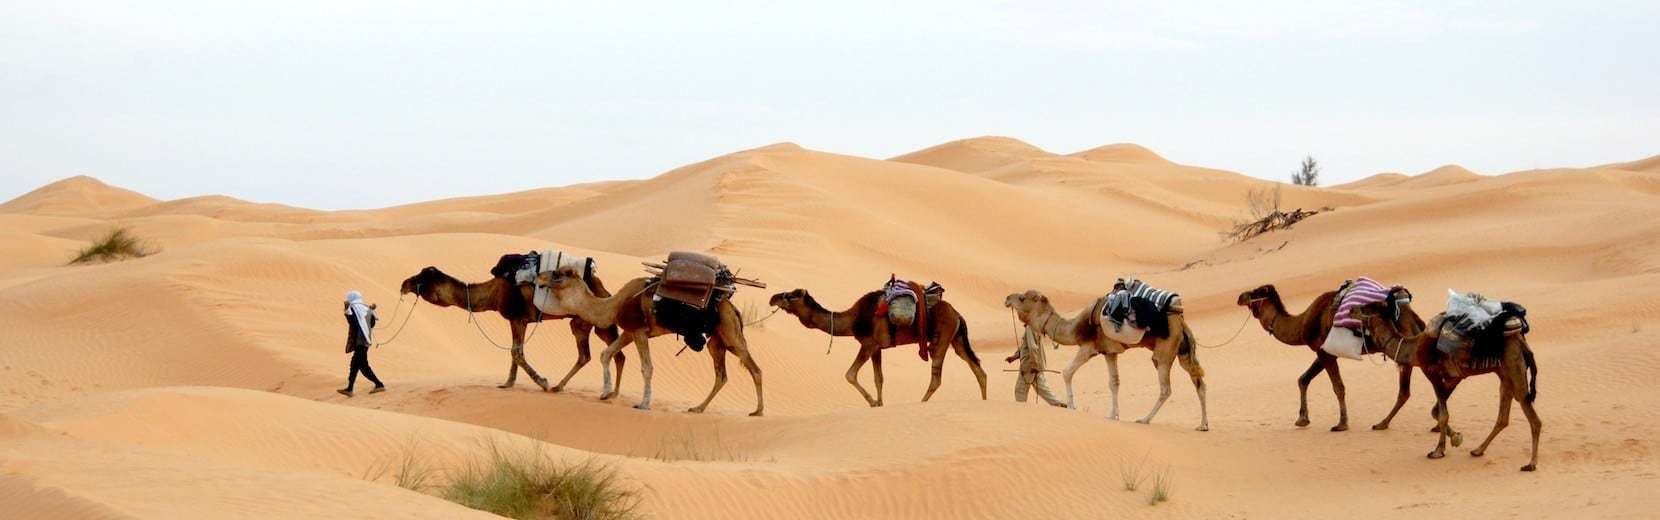 Ride a camel in the Sahara